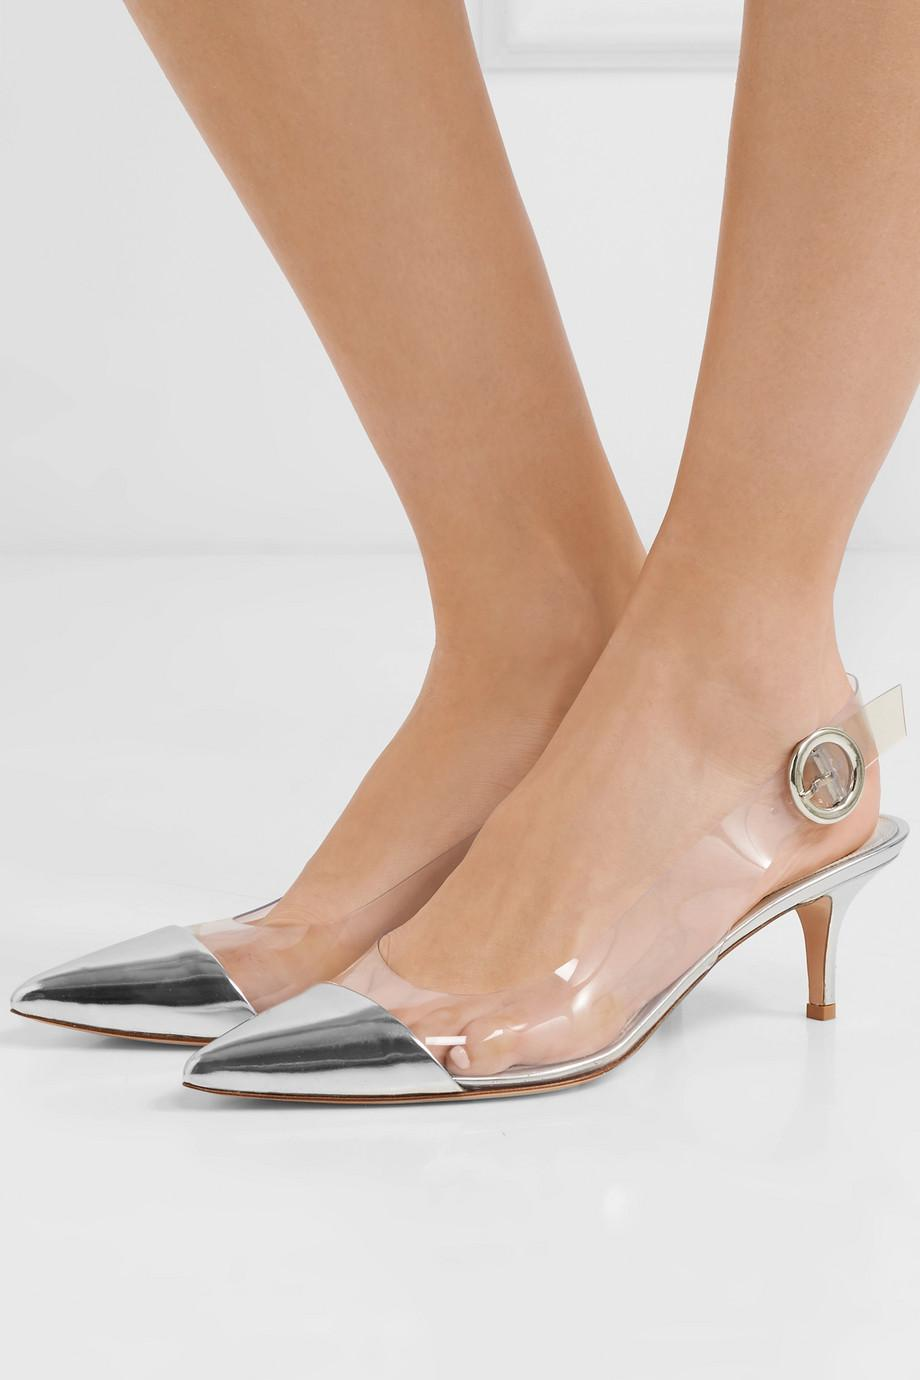 55 Mirrored-leather And Pvc Slingback Pumps - Silver Gianvito Rossi OSsvS